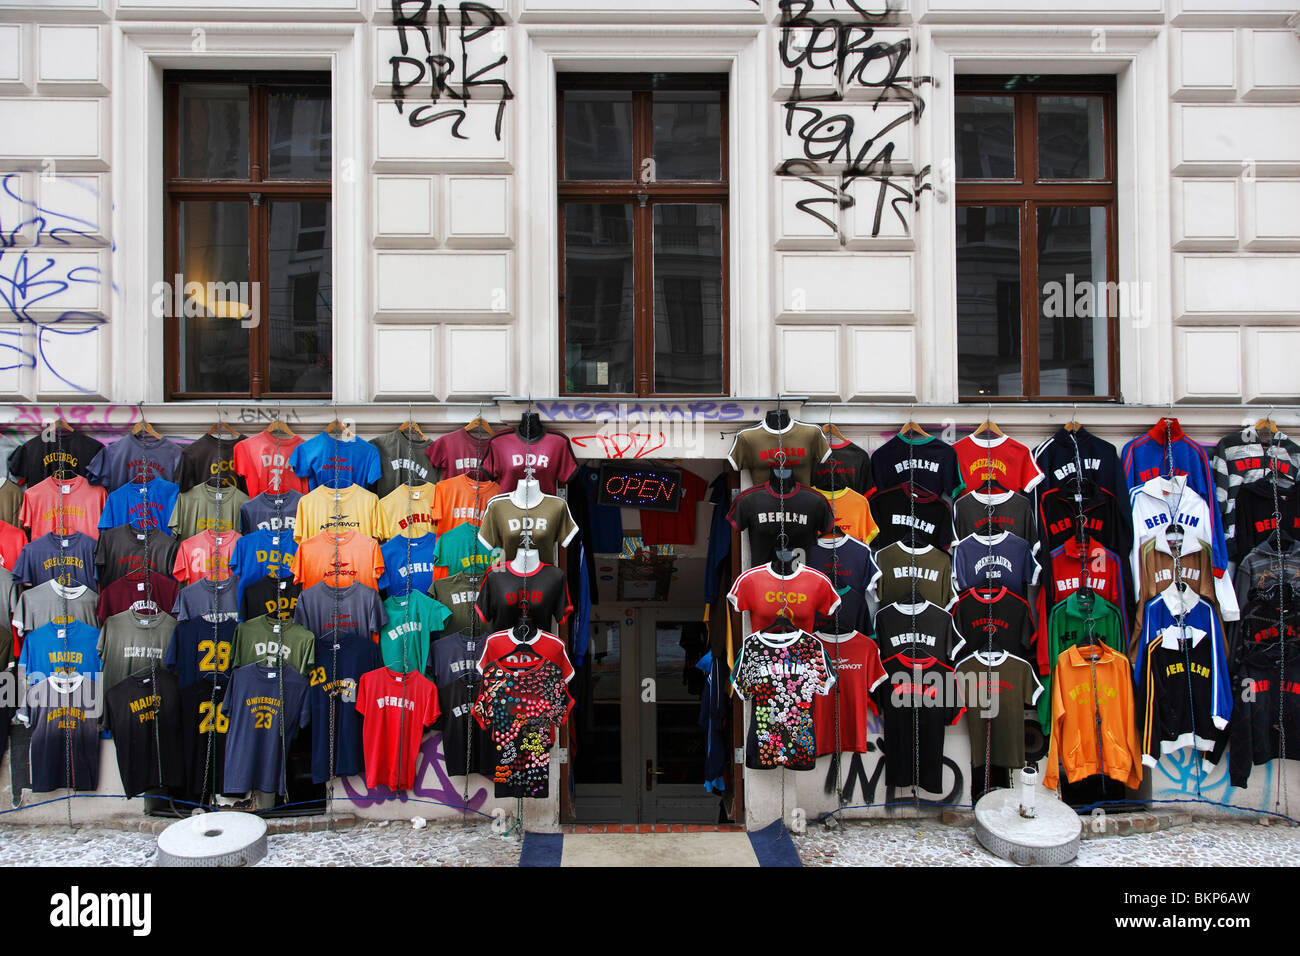 berlin t shirt store with ddr shirts stock photo royalty. Black Bedroom Furniture Sets. Home Design Ideas